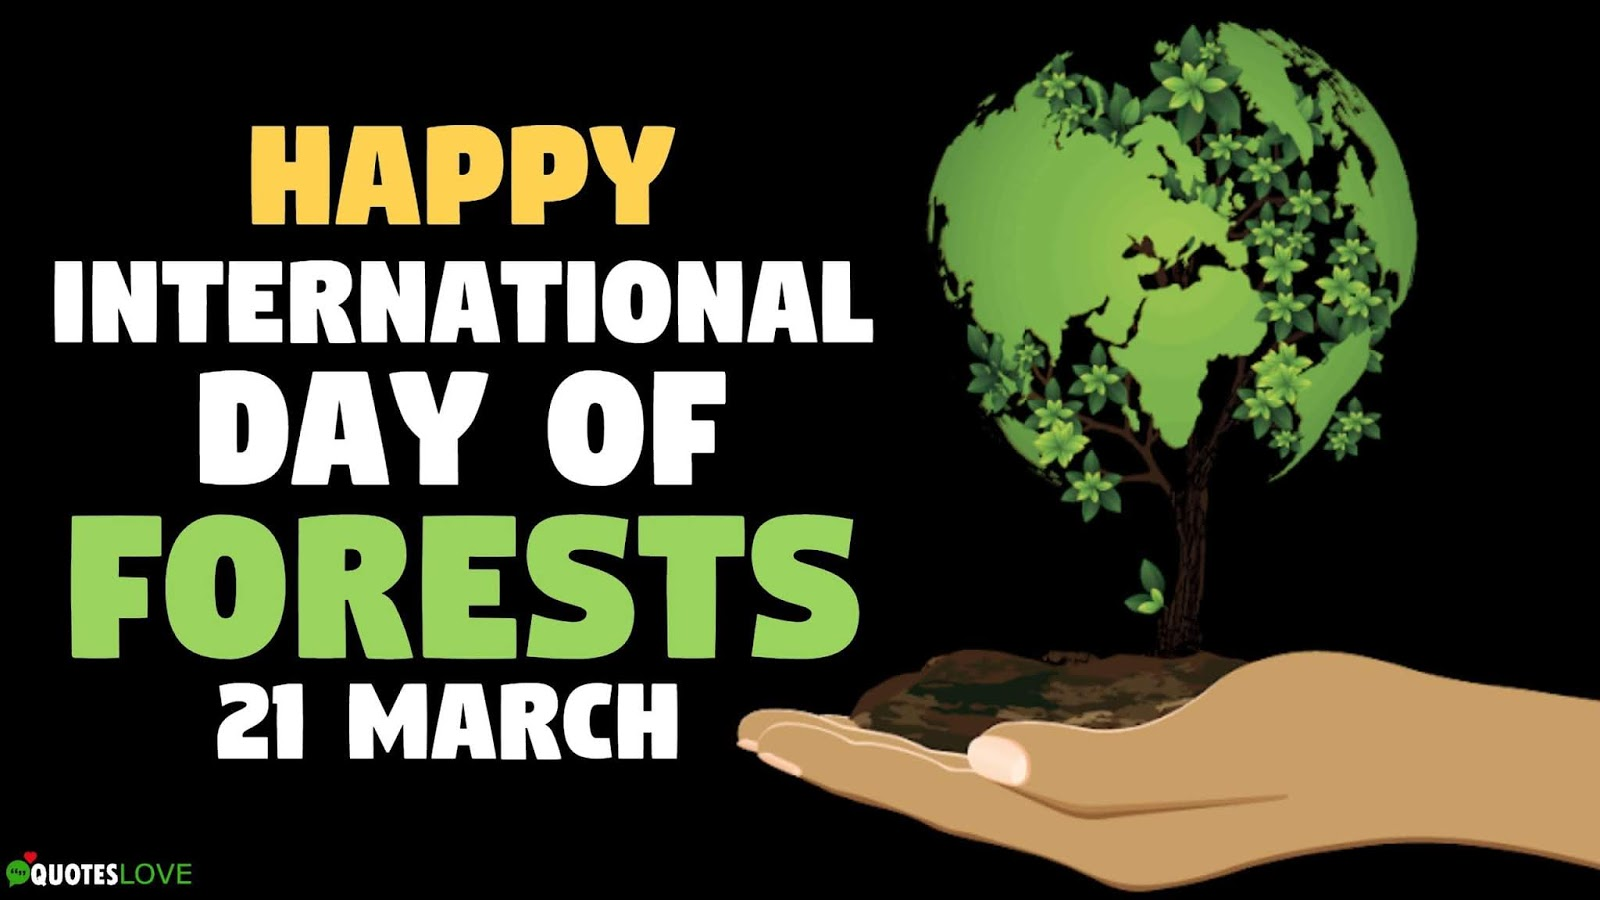 Forestry Day Quotes, Slogans, Images & Posters